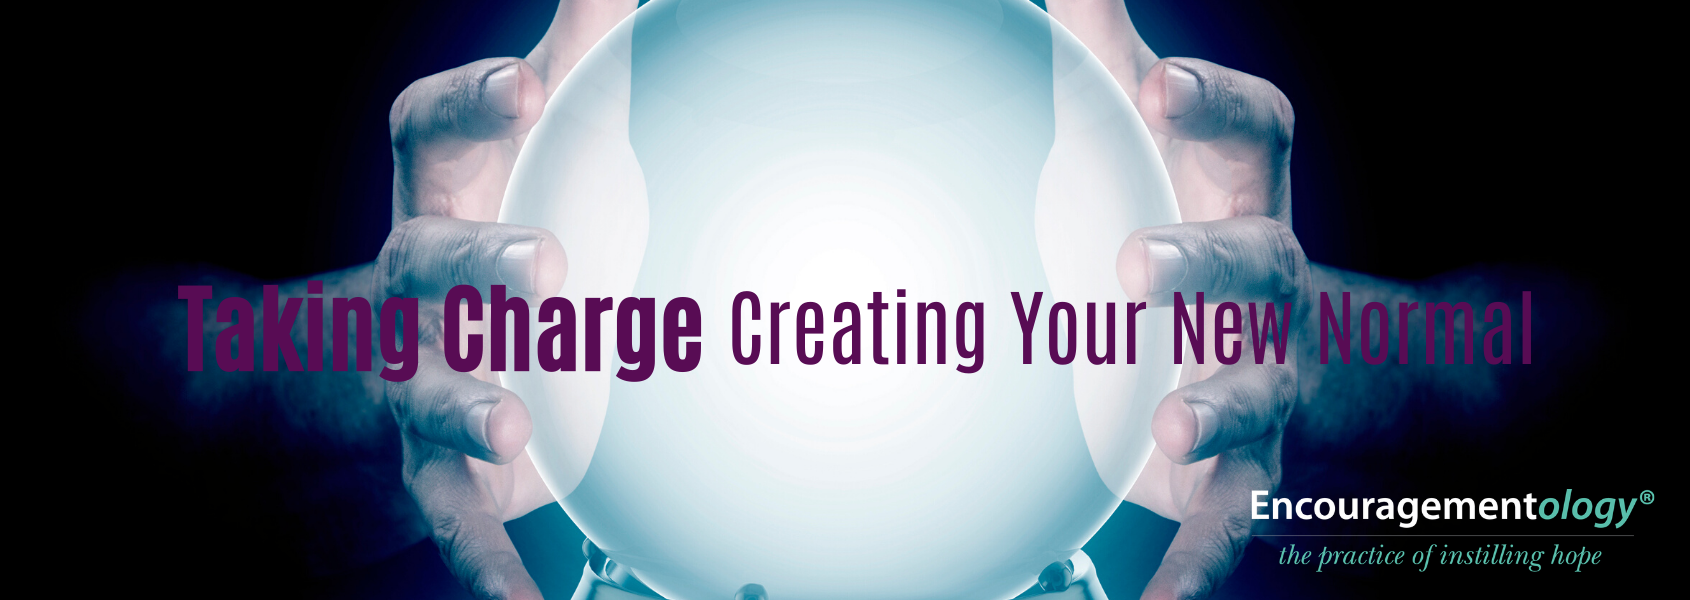 Taking Charge Creating Your New Normal